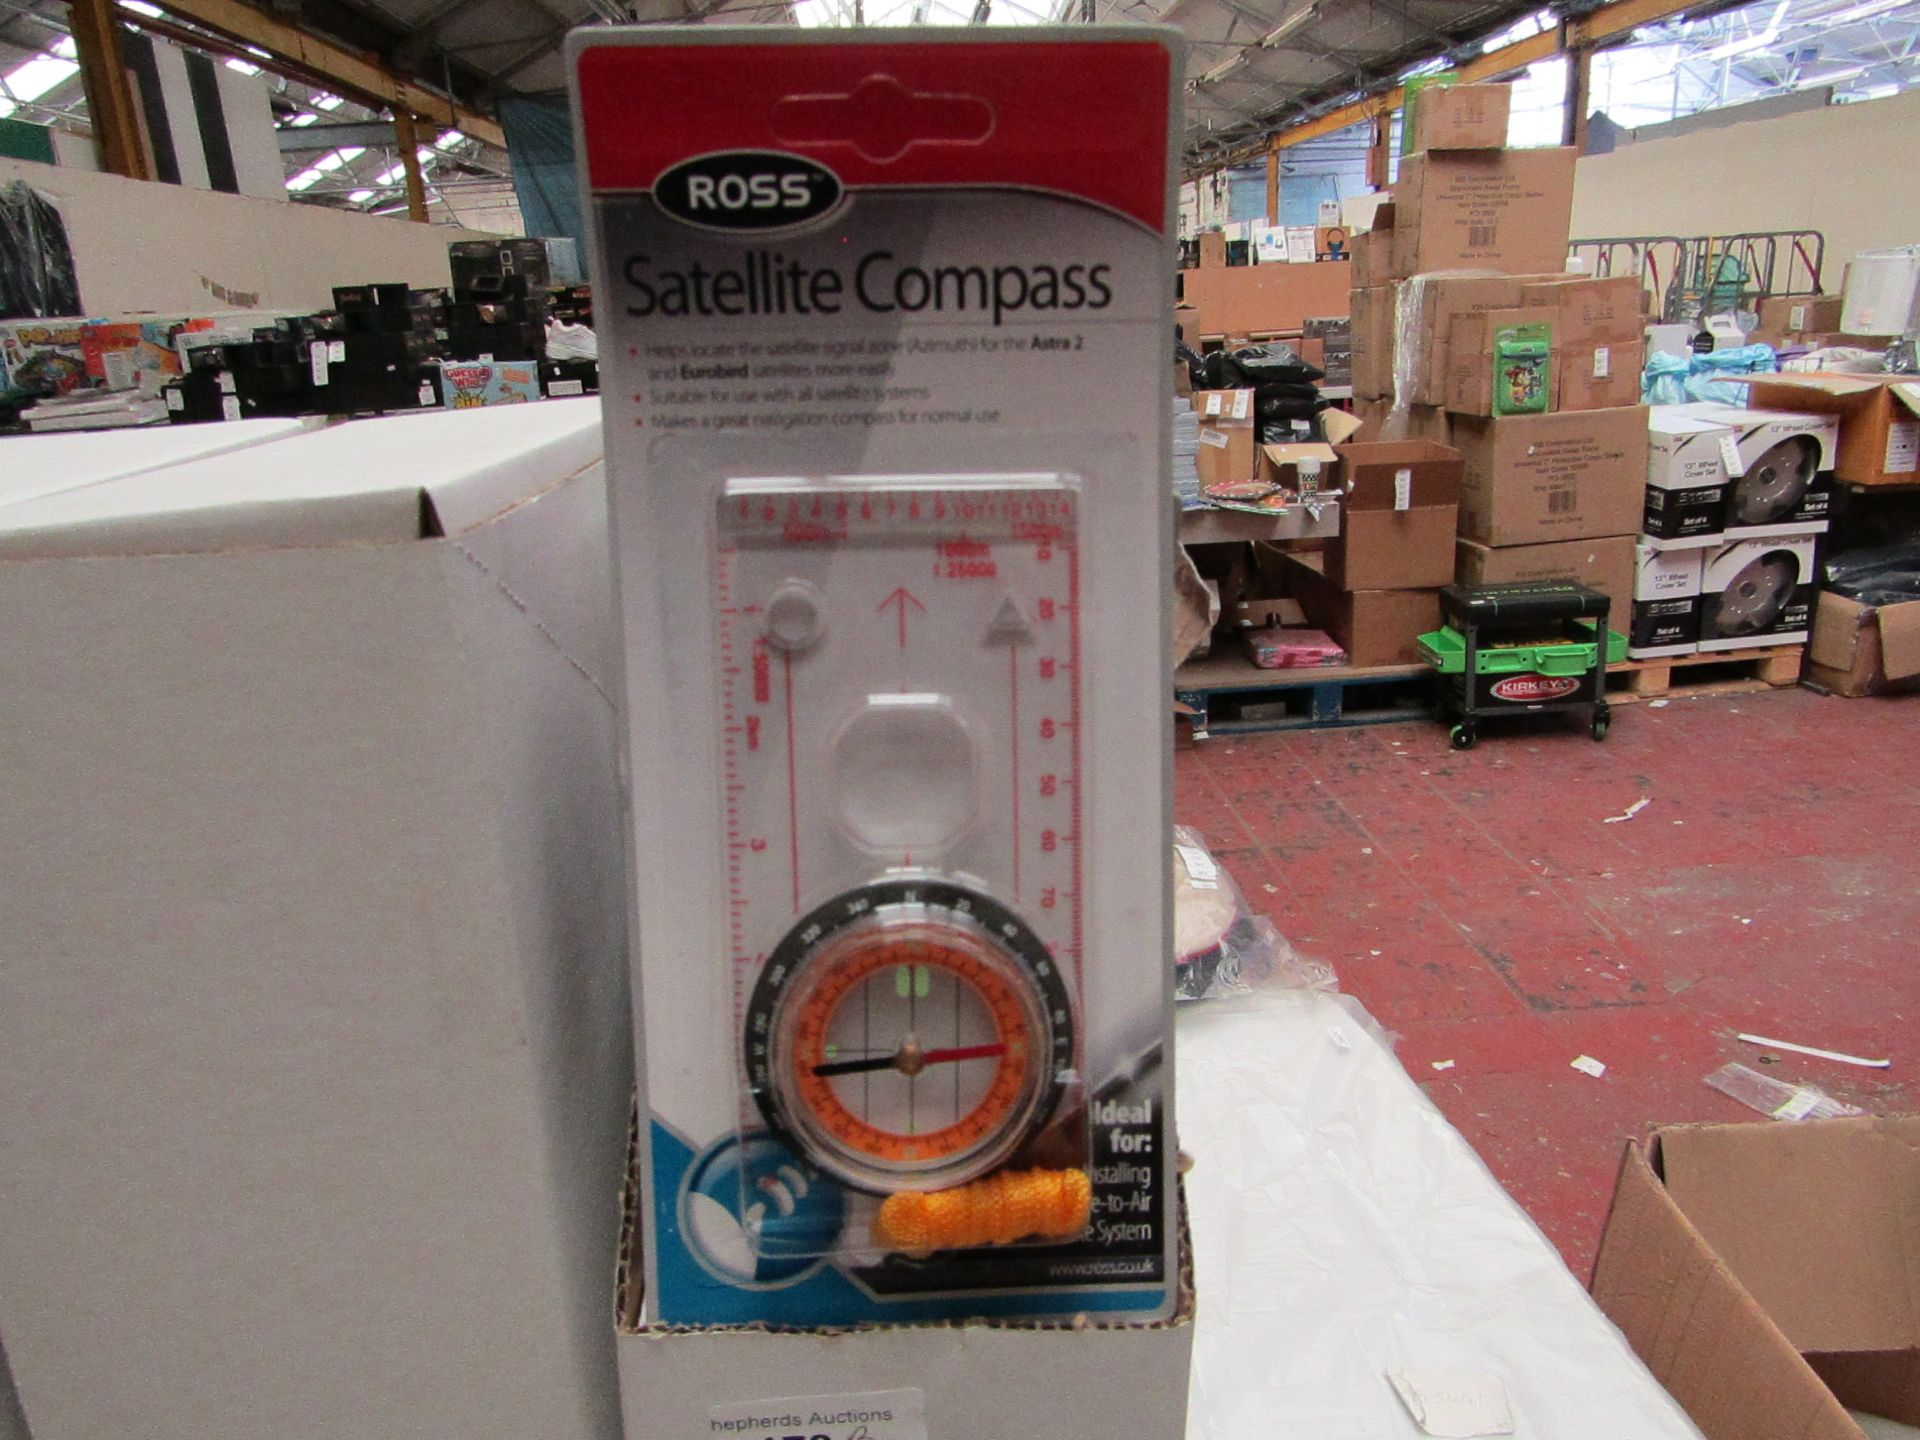 Lot 179 - Box of 10 Ross Satellite Compass'. Unused & Boxed